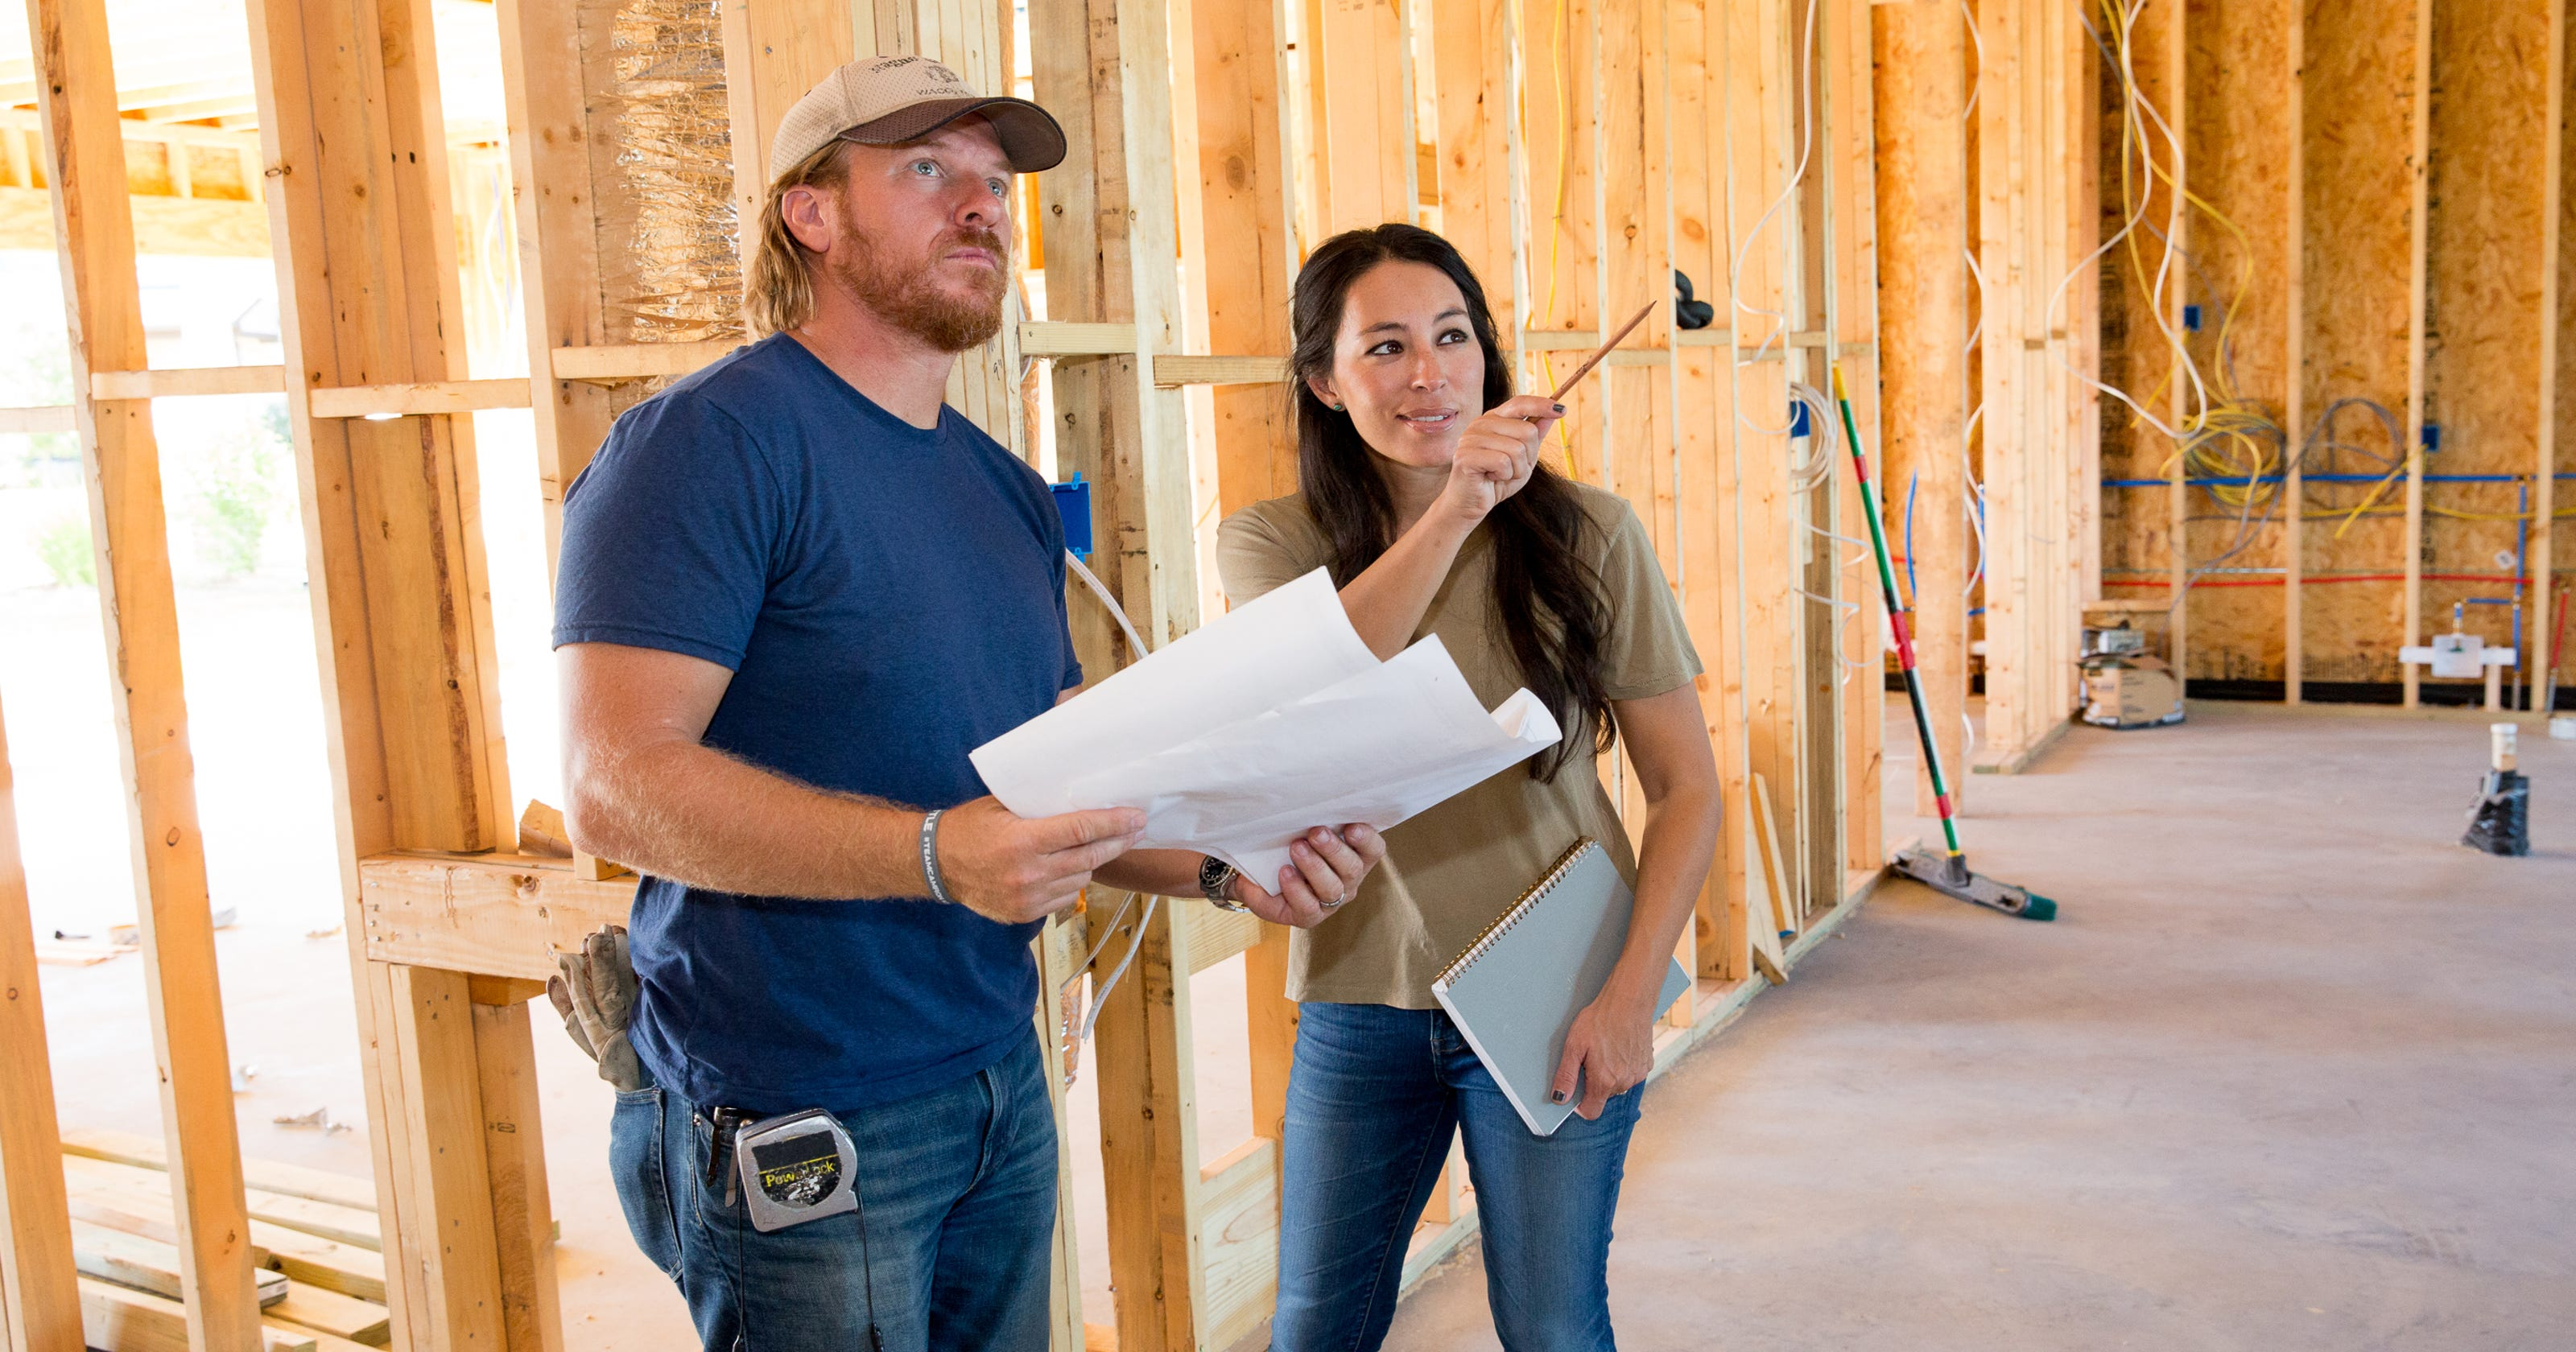 chip and joanna gaines the appeal of hgtv 39 s fixer upper stars. Black Bedroom Furniture Sets. Home Design Ideas